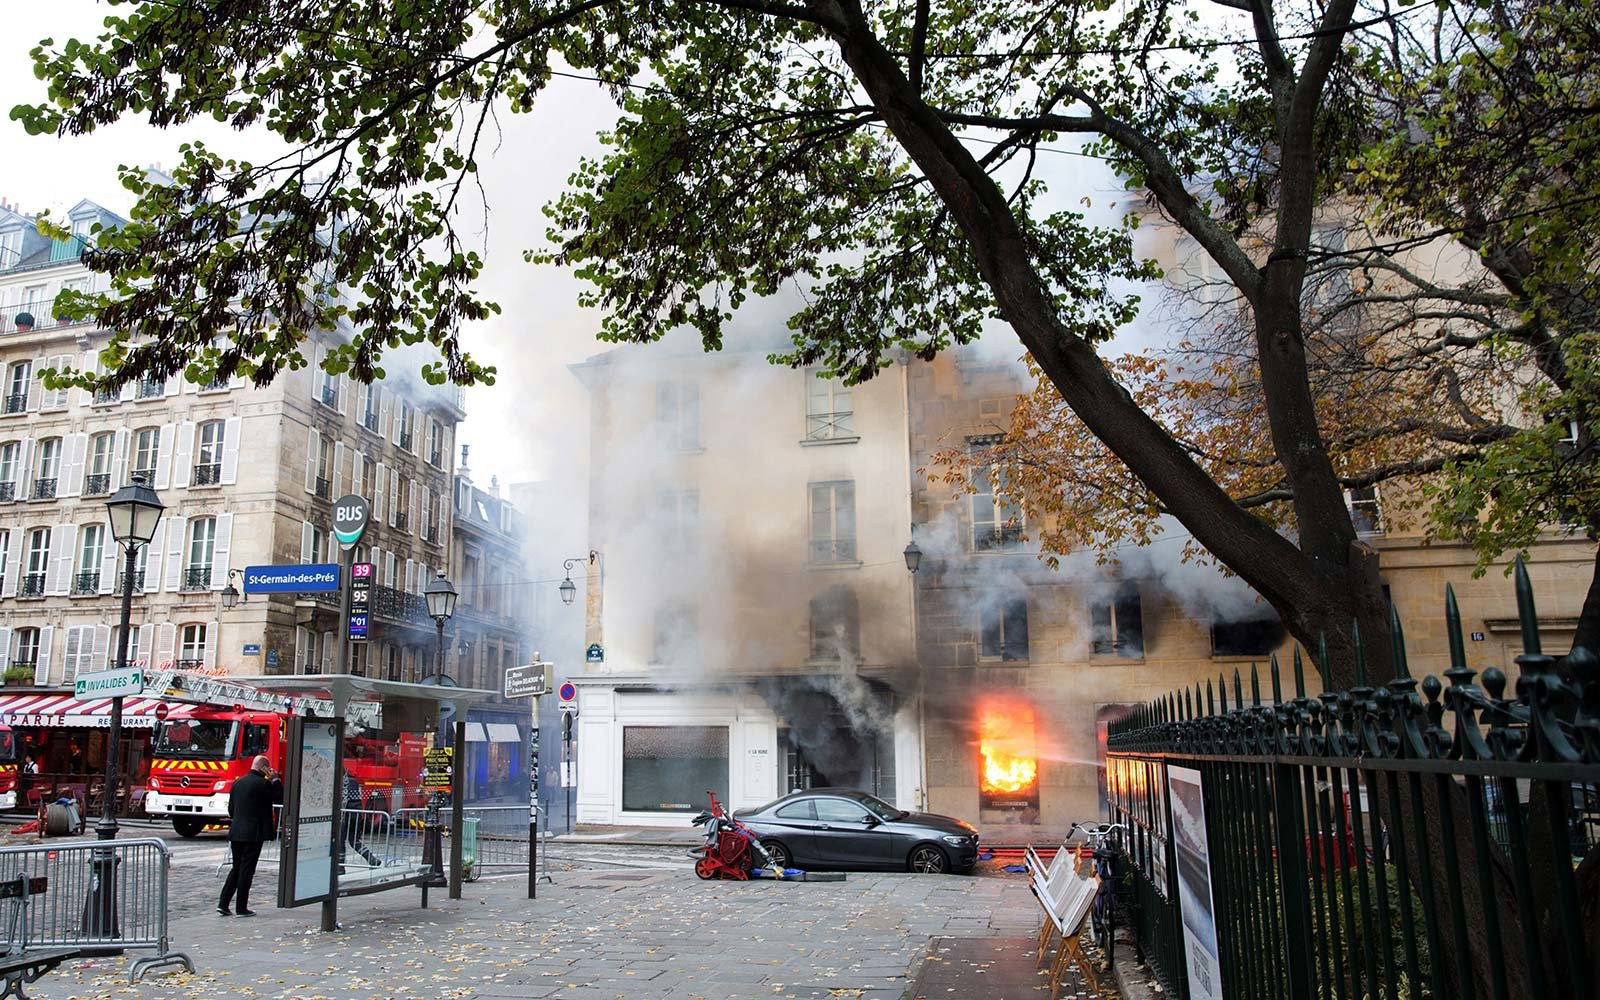 La Hune bookstore St Germain neighborhood fire Paris France